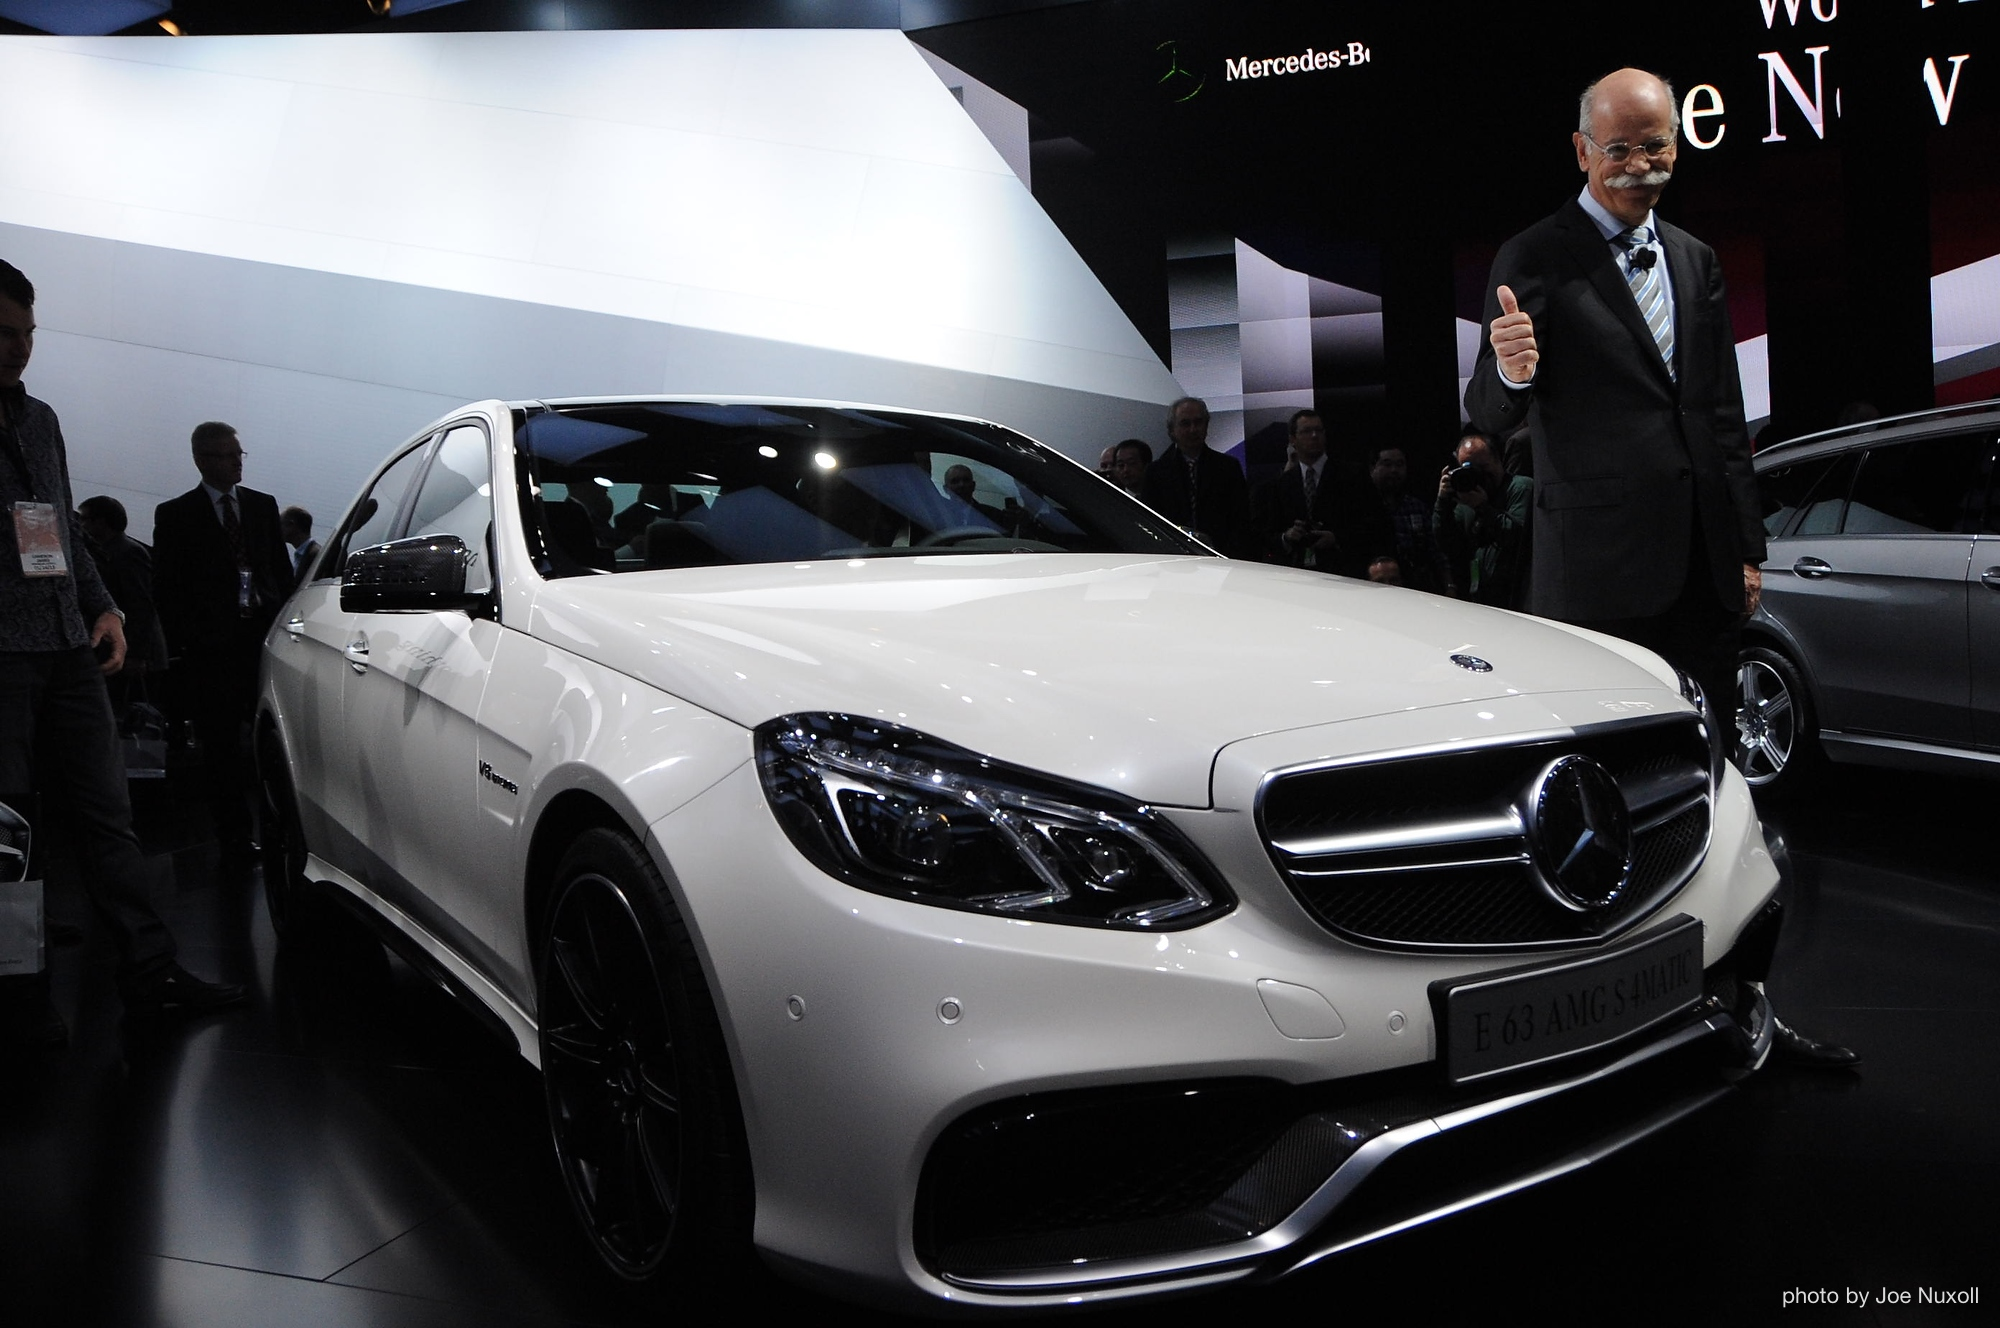 2014 mercedes benz e63 amg live photos 2013 detroit auto show. Black Bedroom Furniture Sets. Home Design Ideas